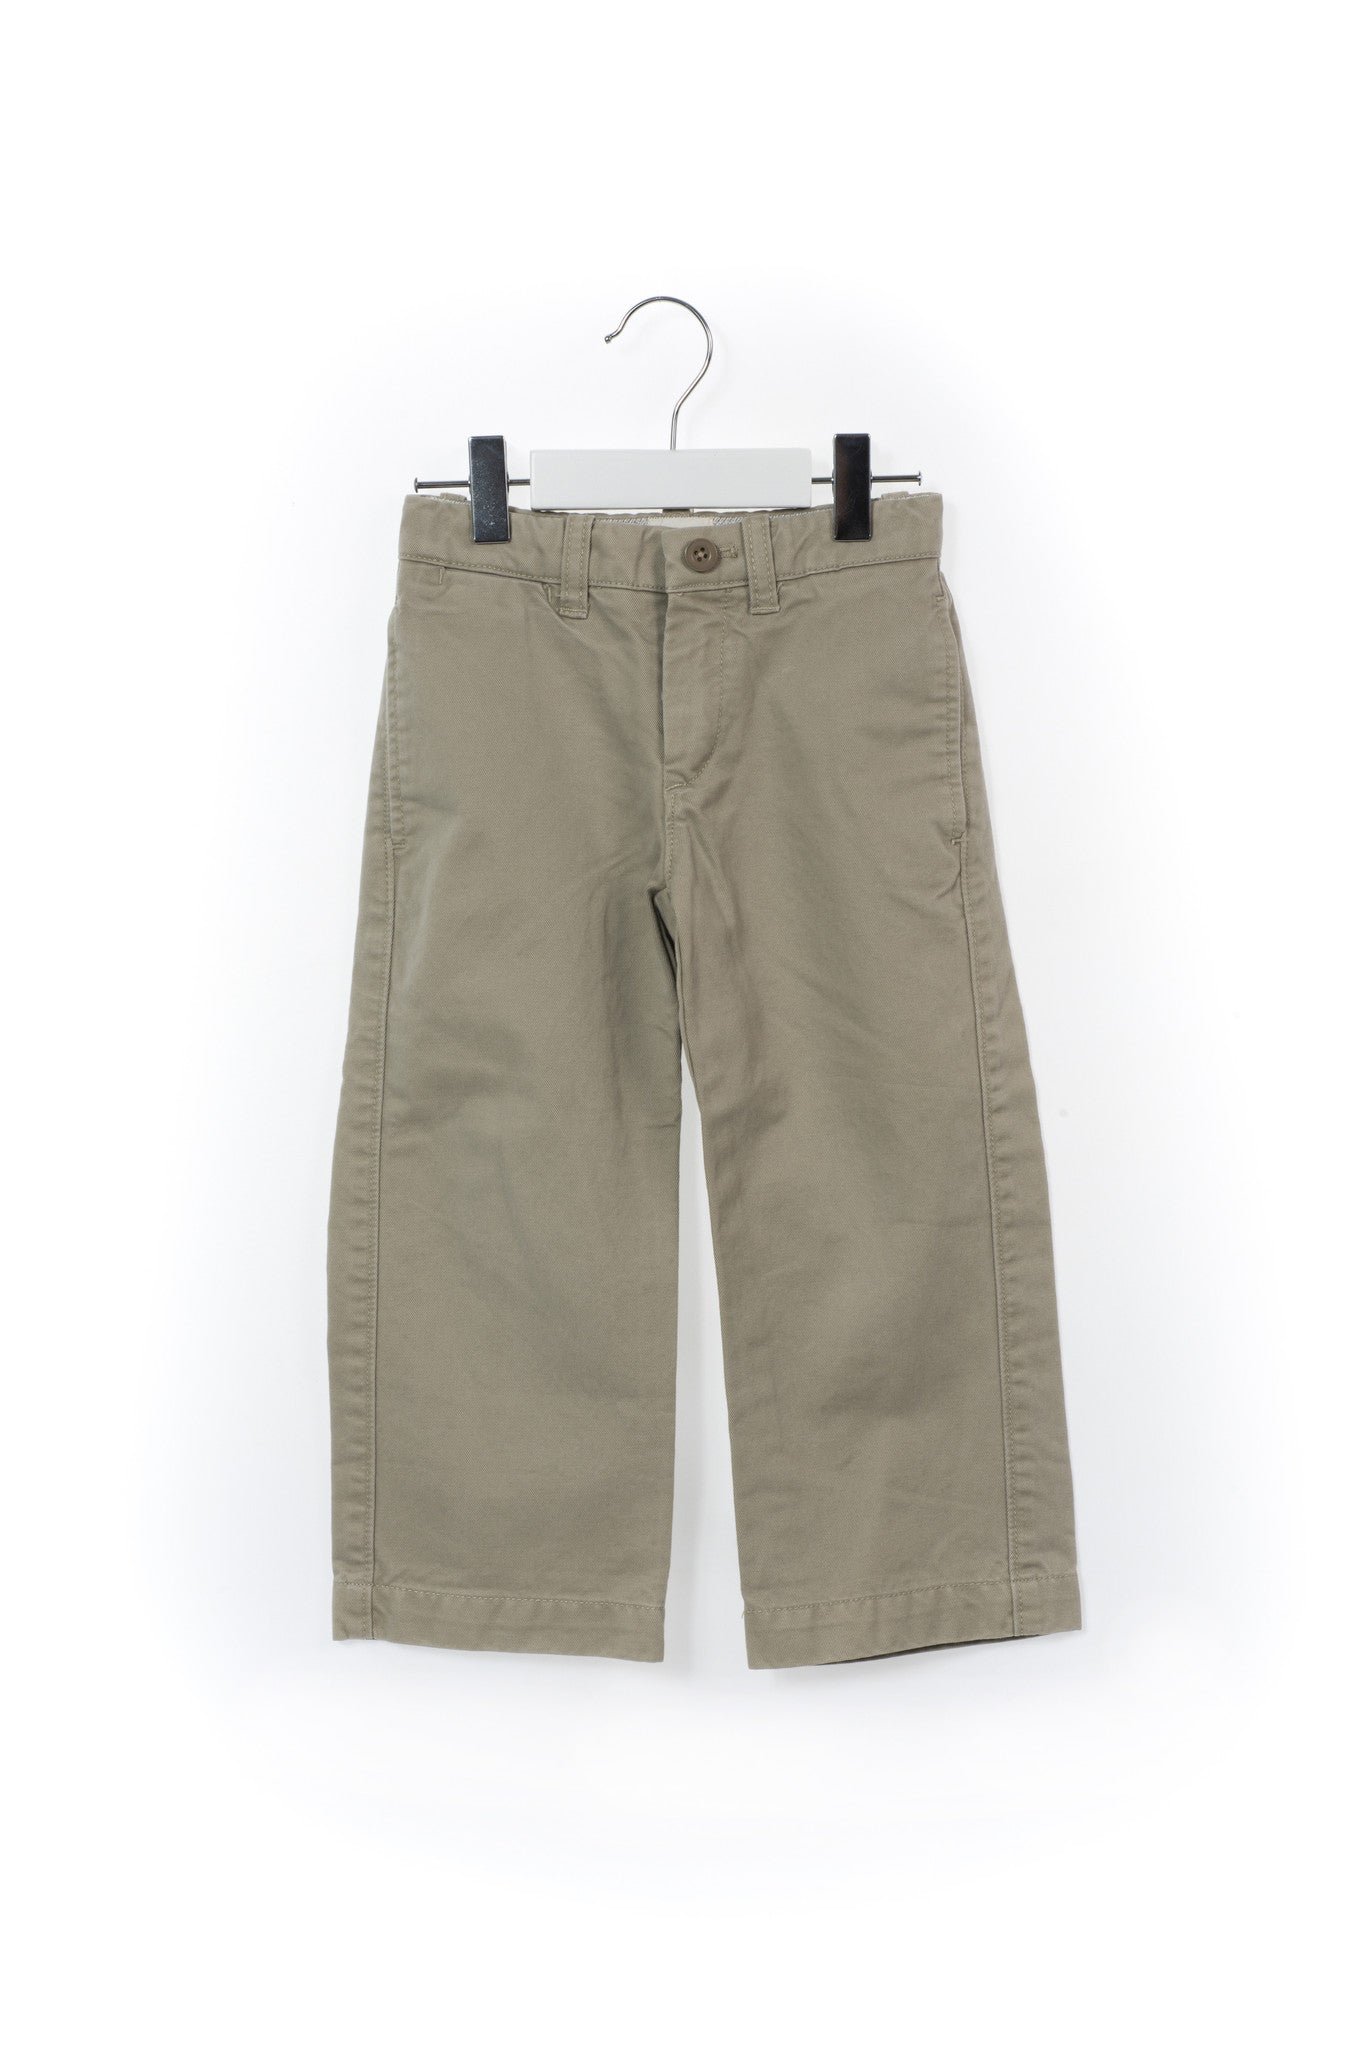 Pants 3T, Crewcuts at Retykle - Online Baby & Kids Clothing Up to 90% Off